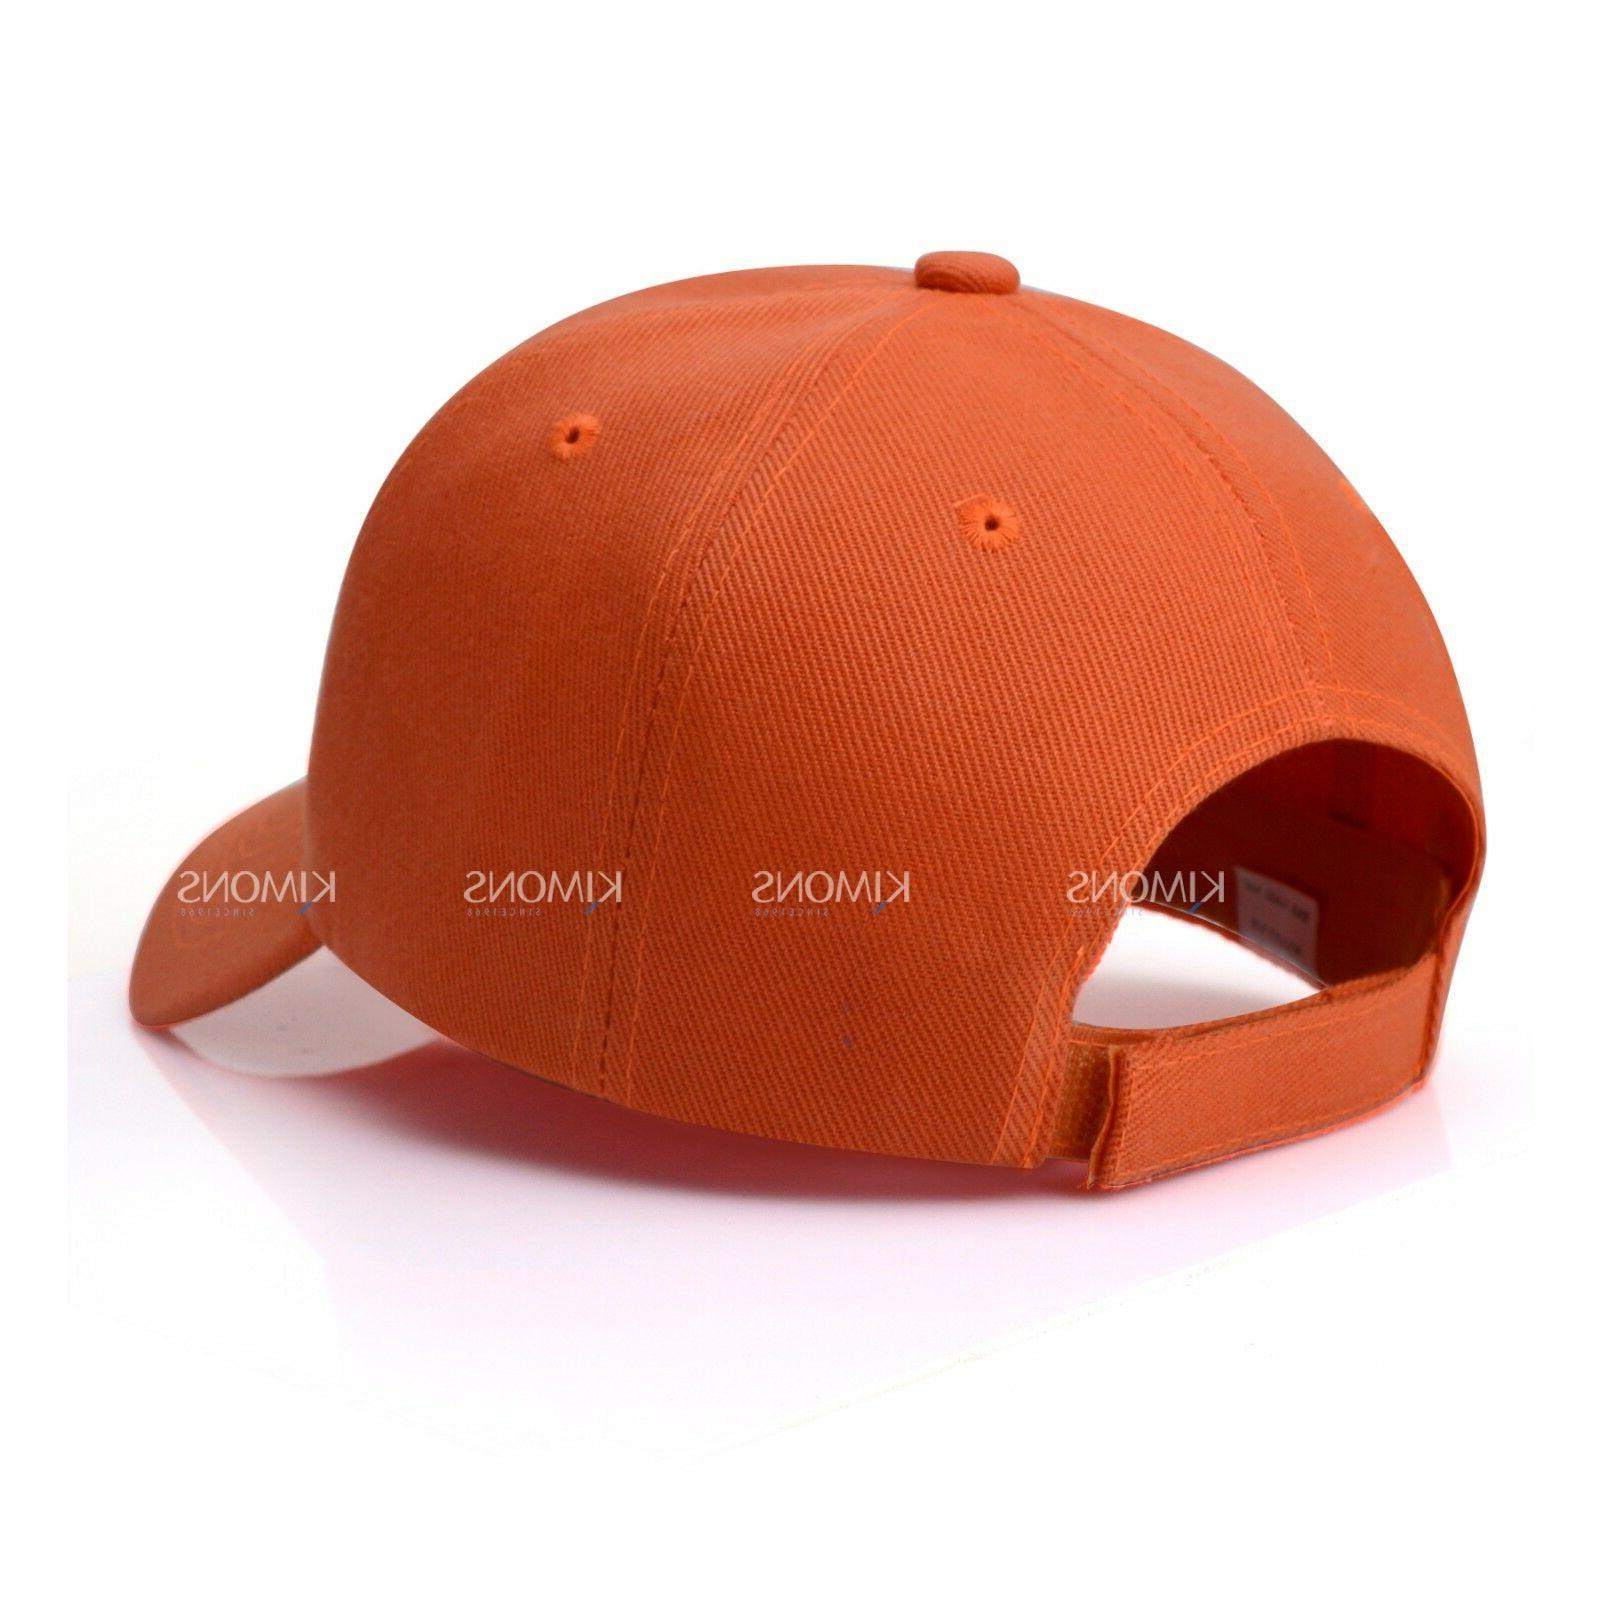 Loop Solid Color Curved Visor Hat Ball Army Men